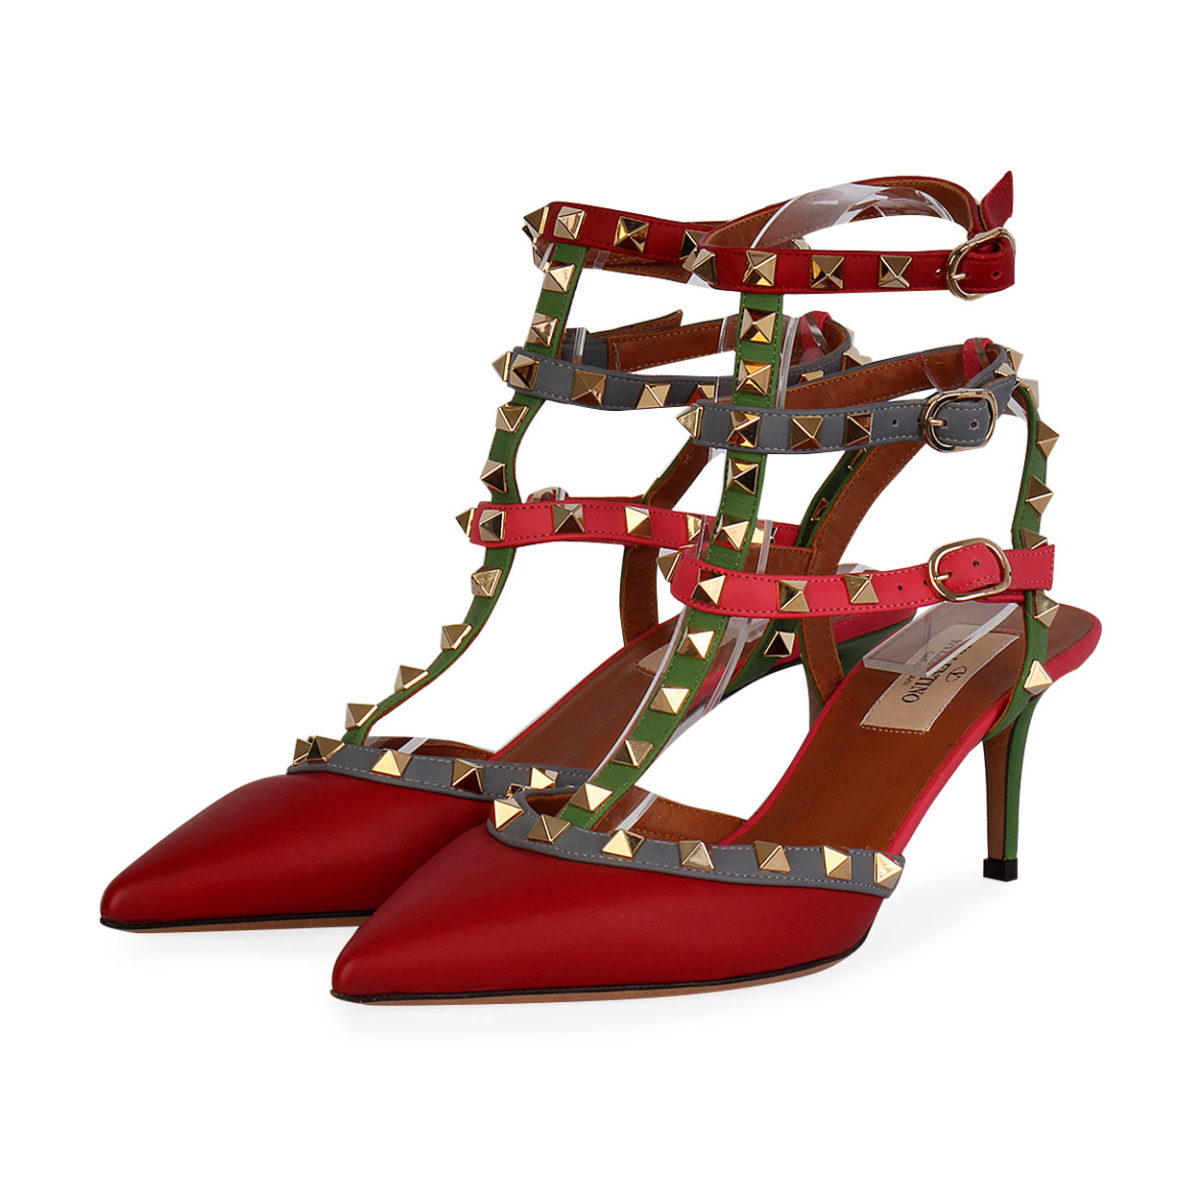 5c553dda17a VALENTINO Pebbled Leather Rockstud T-Strap Kitten Heel Pumps Red - S ...